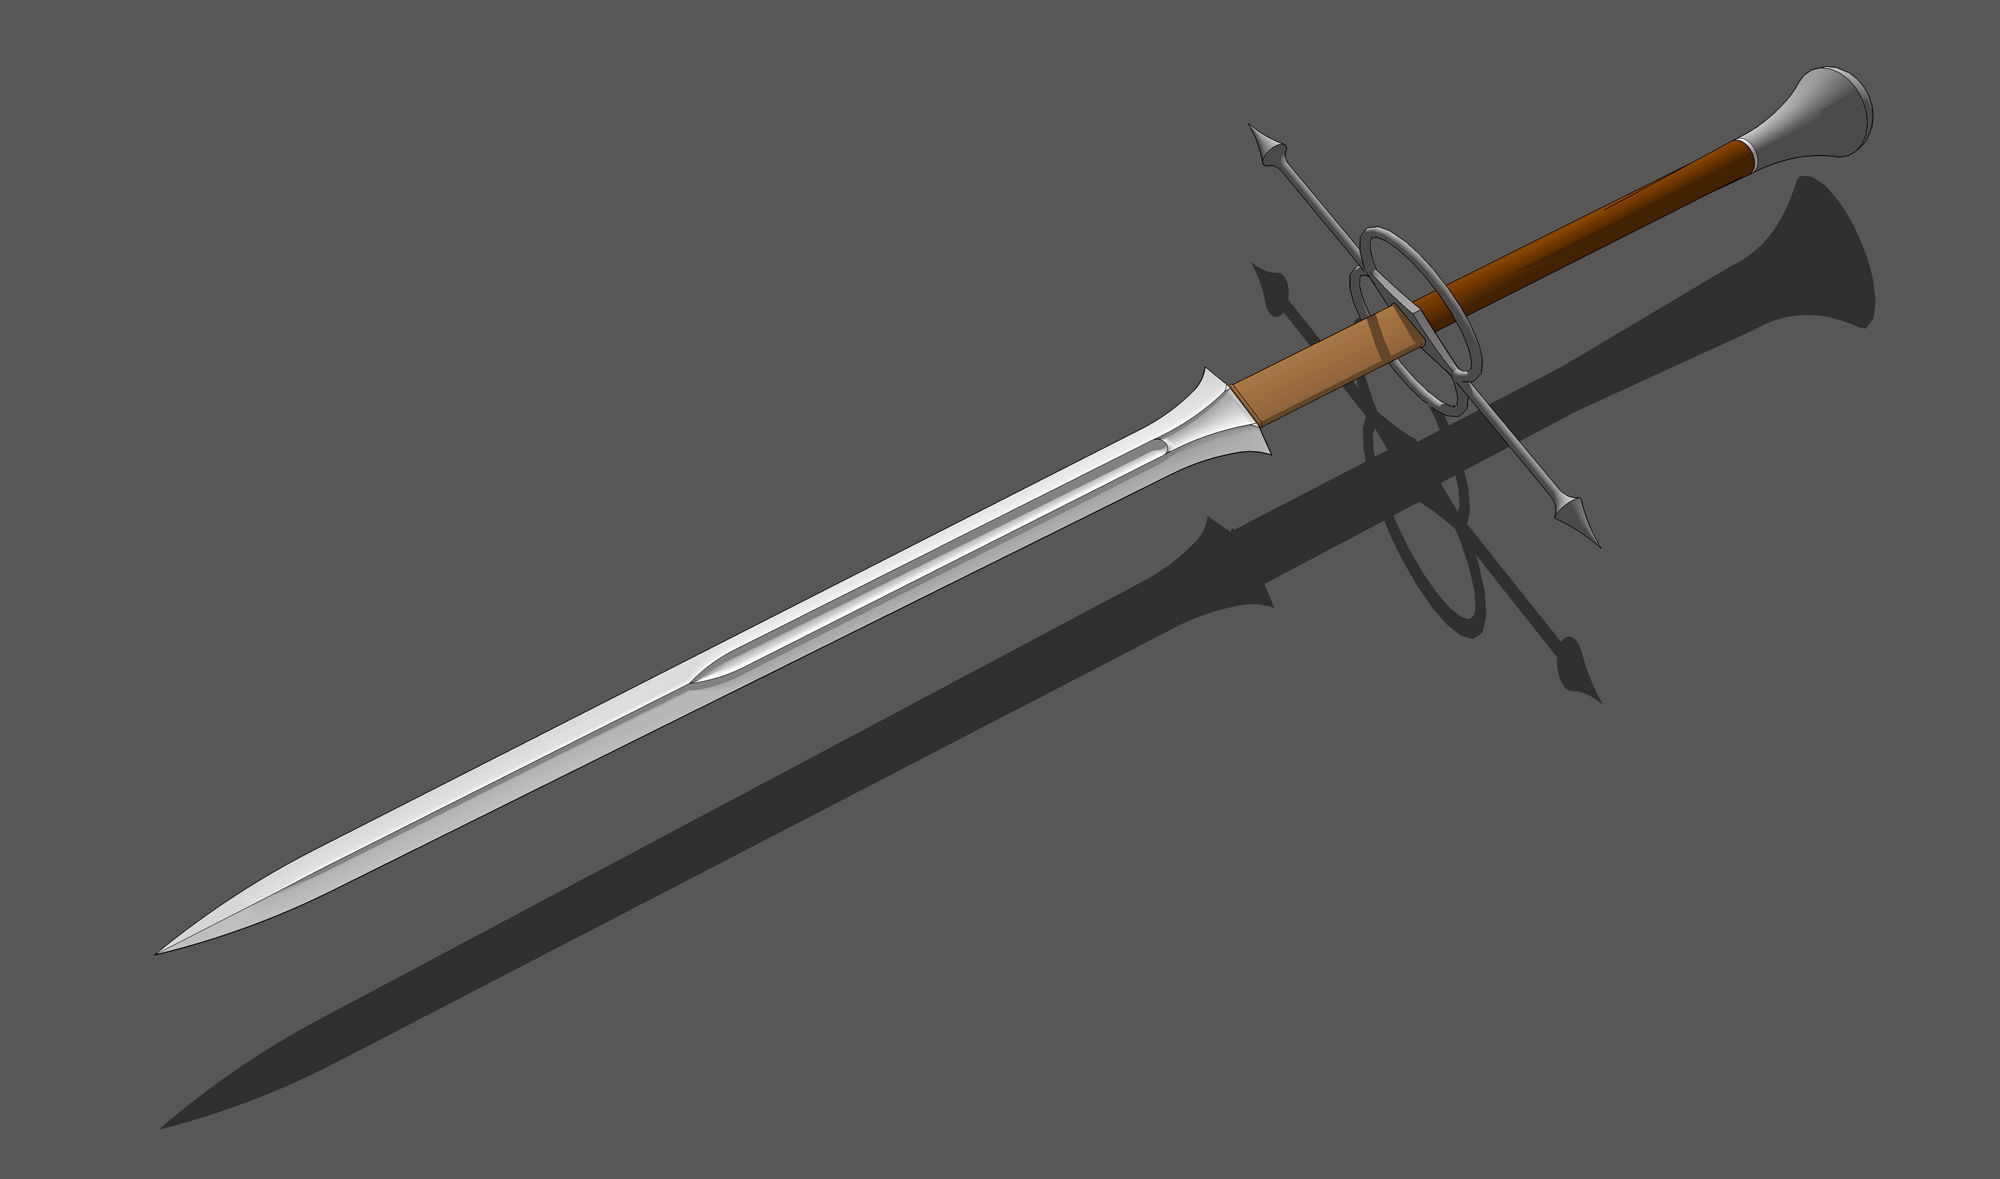 Greatsword of the Lily by shad-brooks on DeviantArt